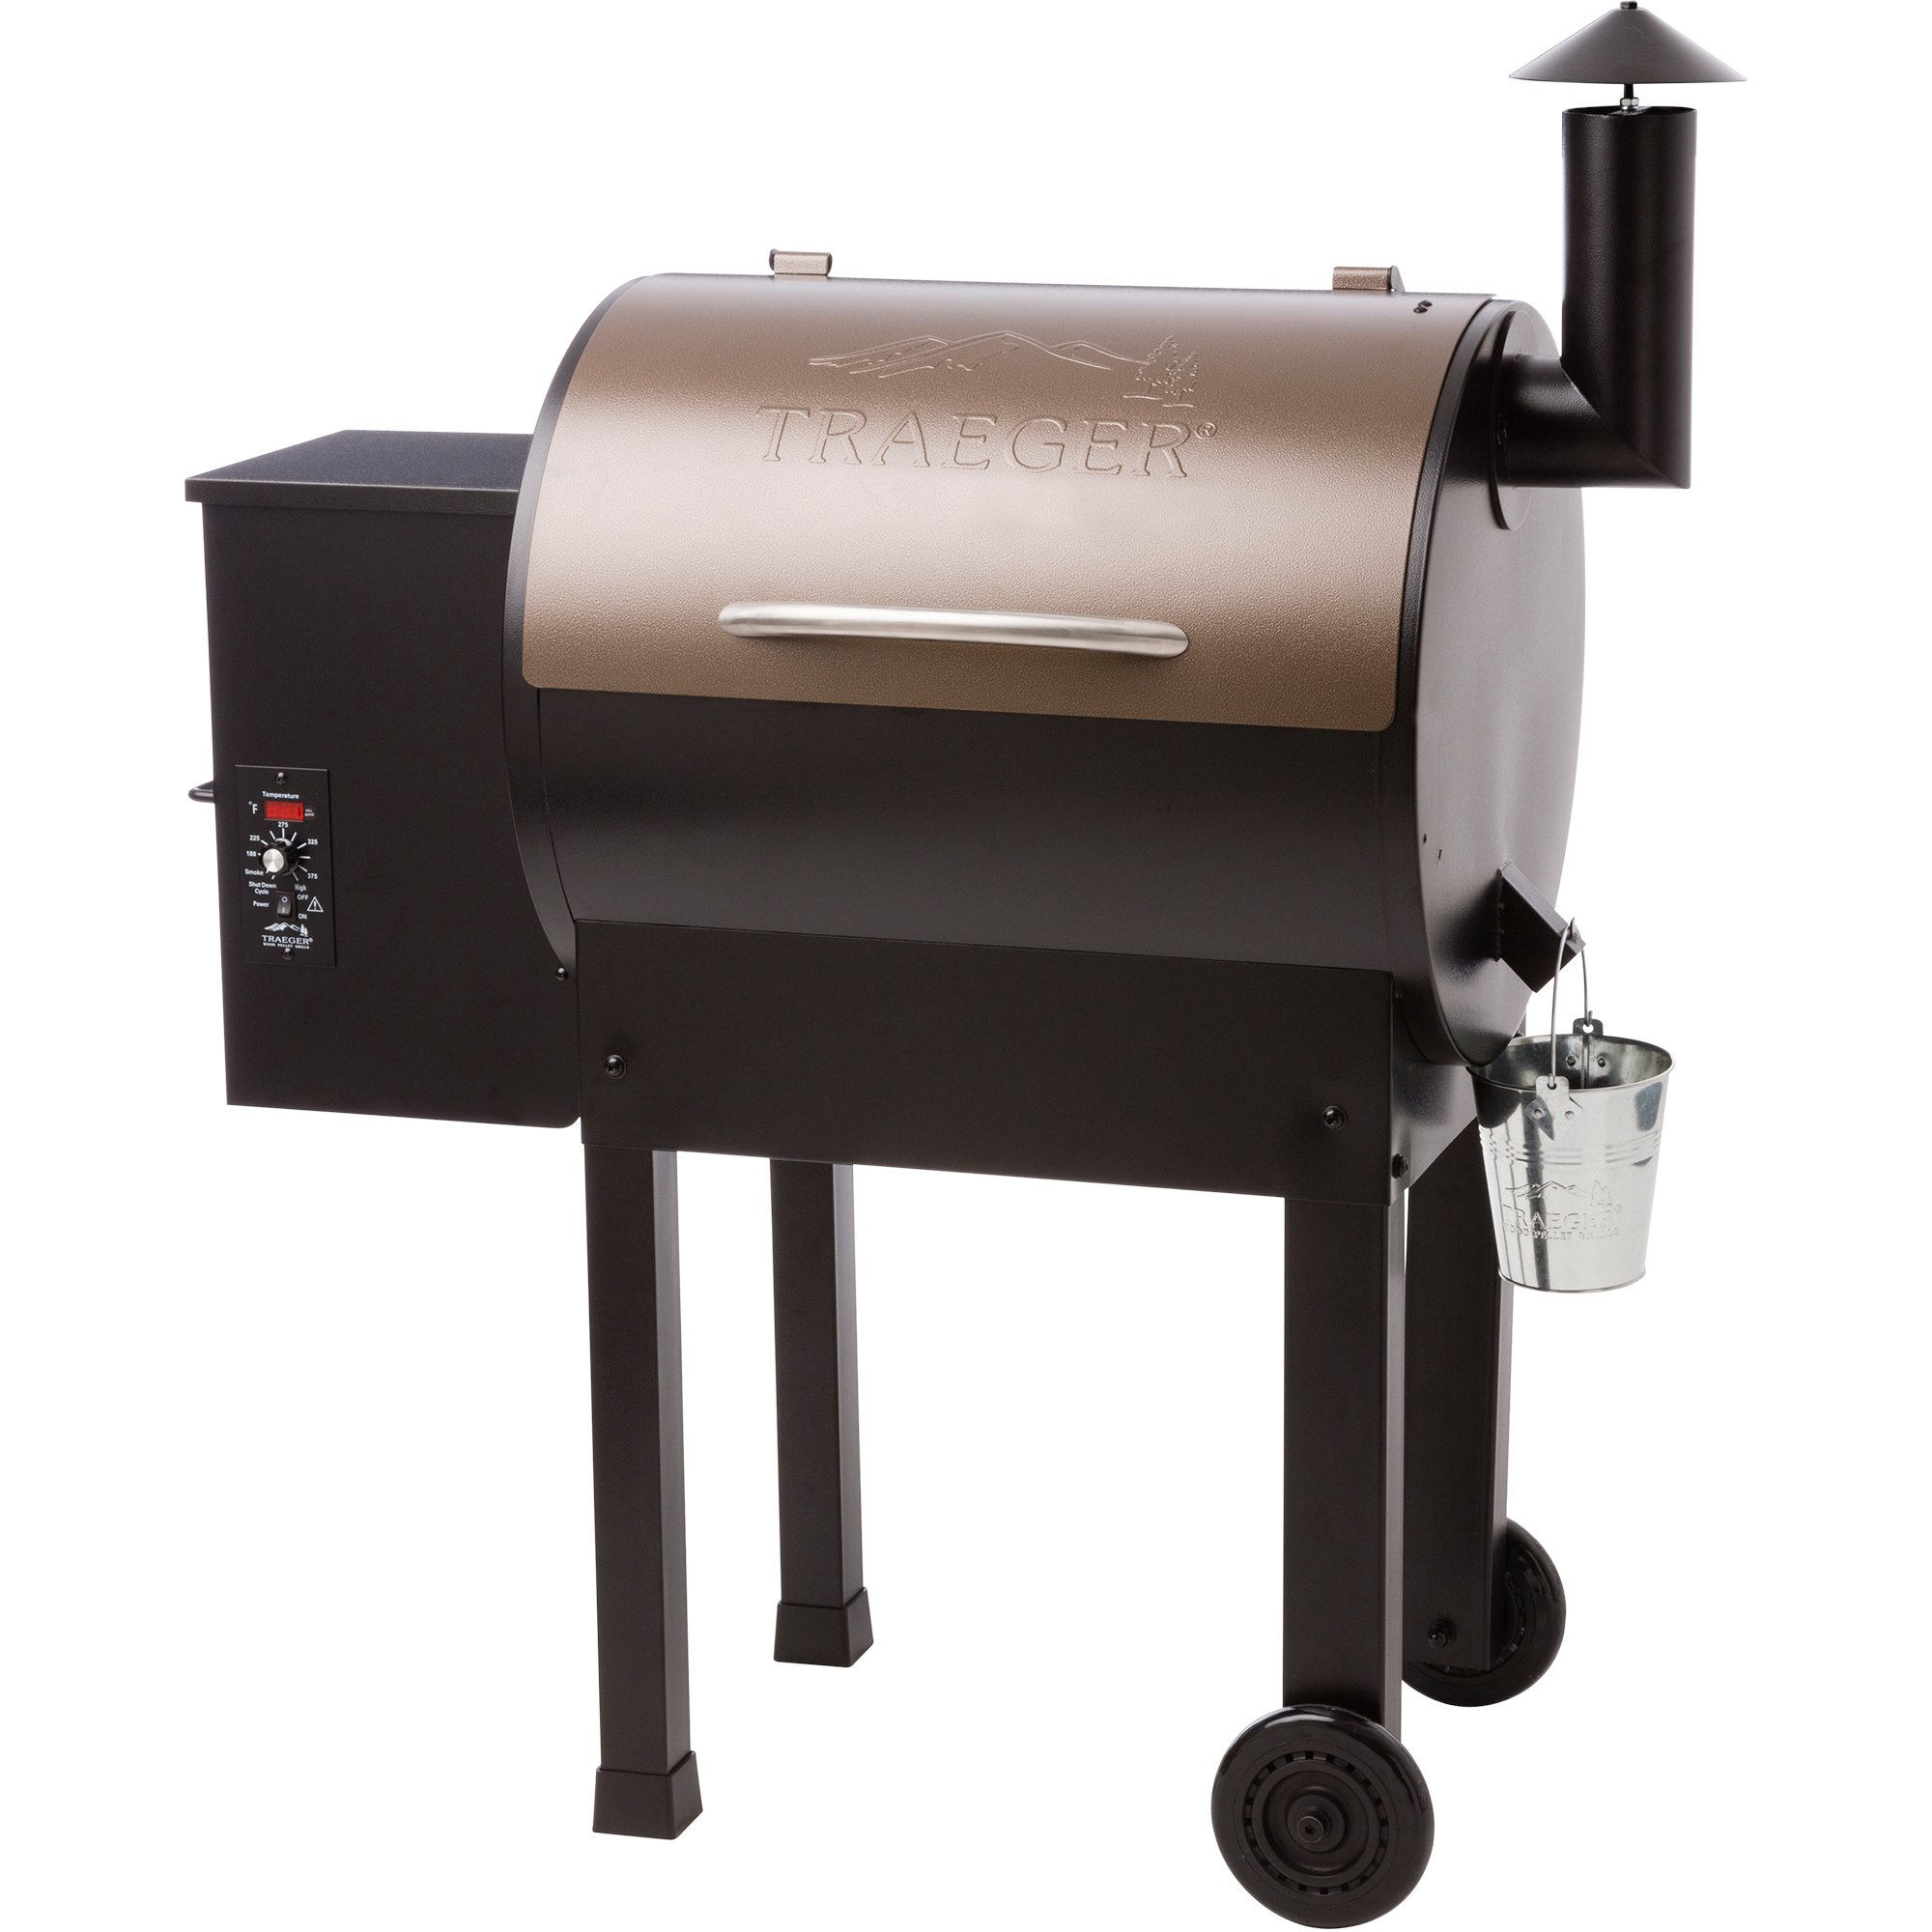 Traeger TFB42LZBC Grills Lil Tex Elite 22 Wood Pellet Grill and Smoker - Grill, Smoke, Bake, Roast, Braise, and BBQ (Bronze) by Traeger